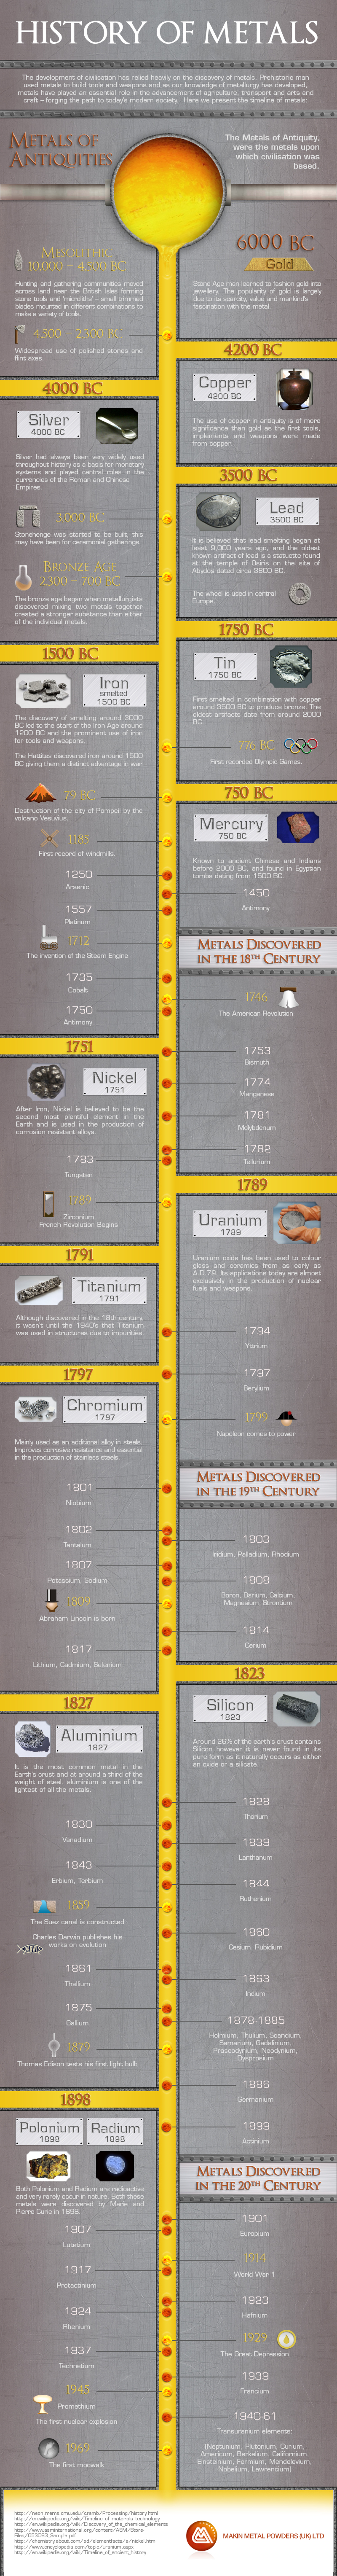 Infographic showing the history of metal discovery